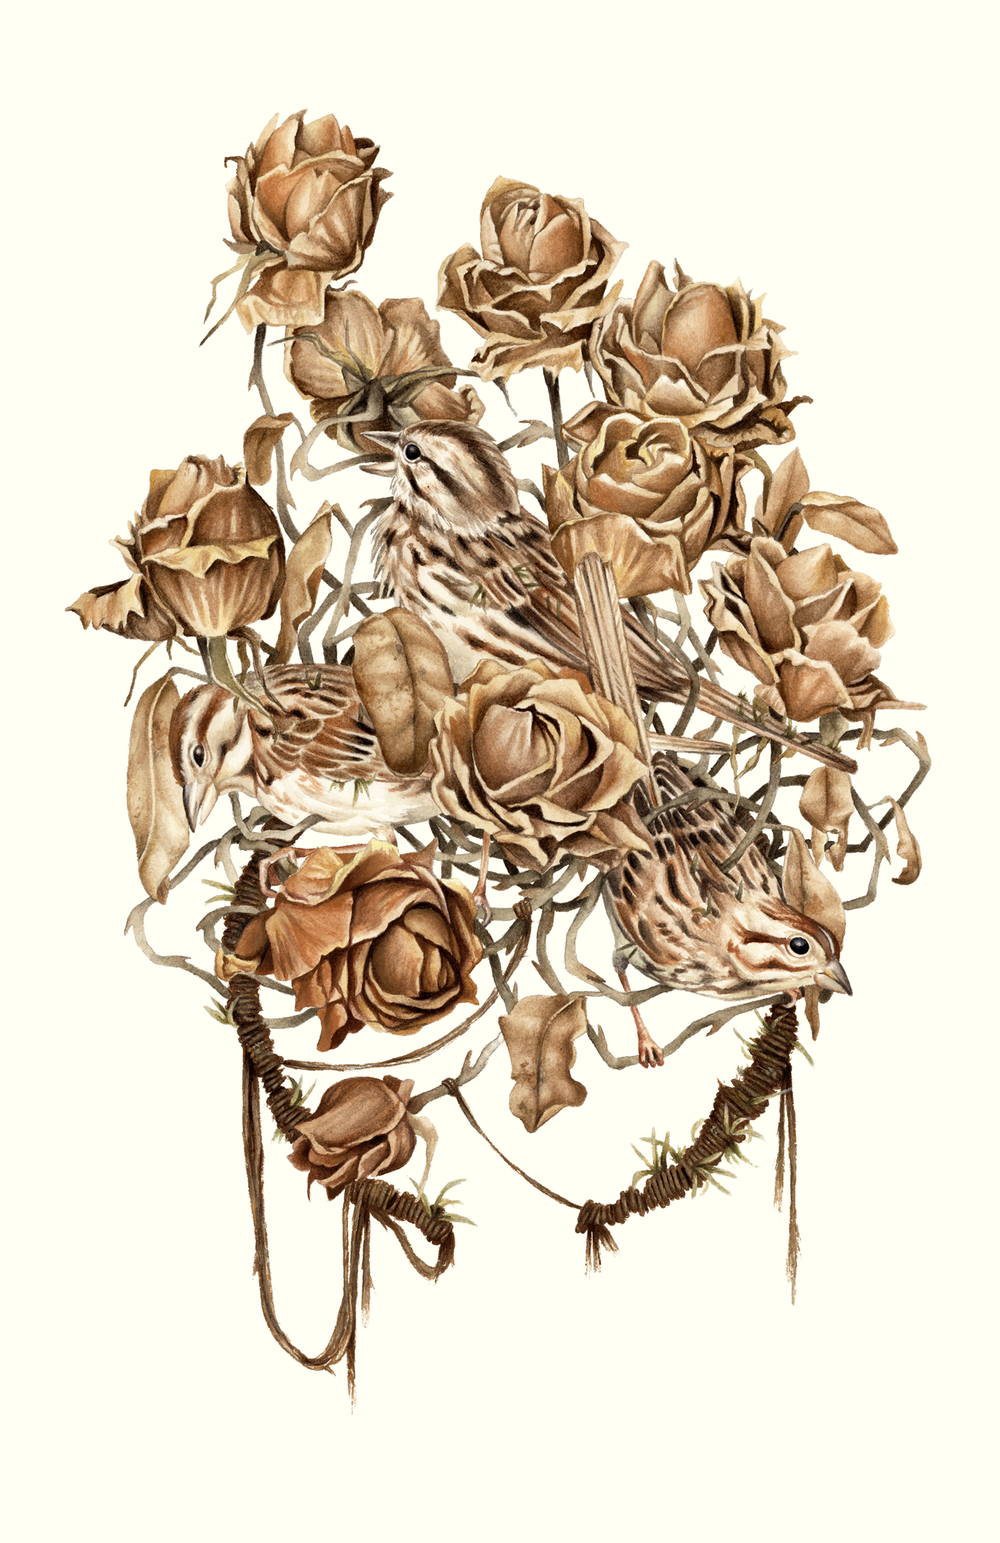 OfRoses_11x17_scanner_Print.png